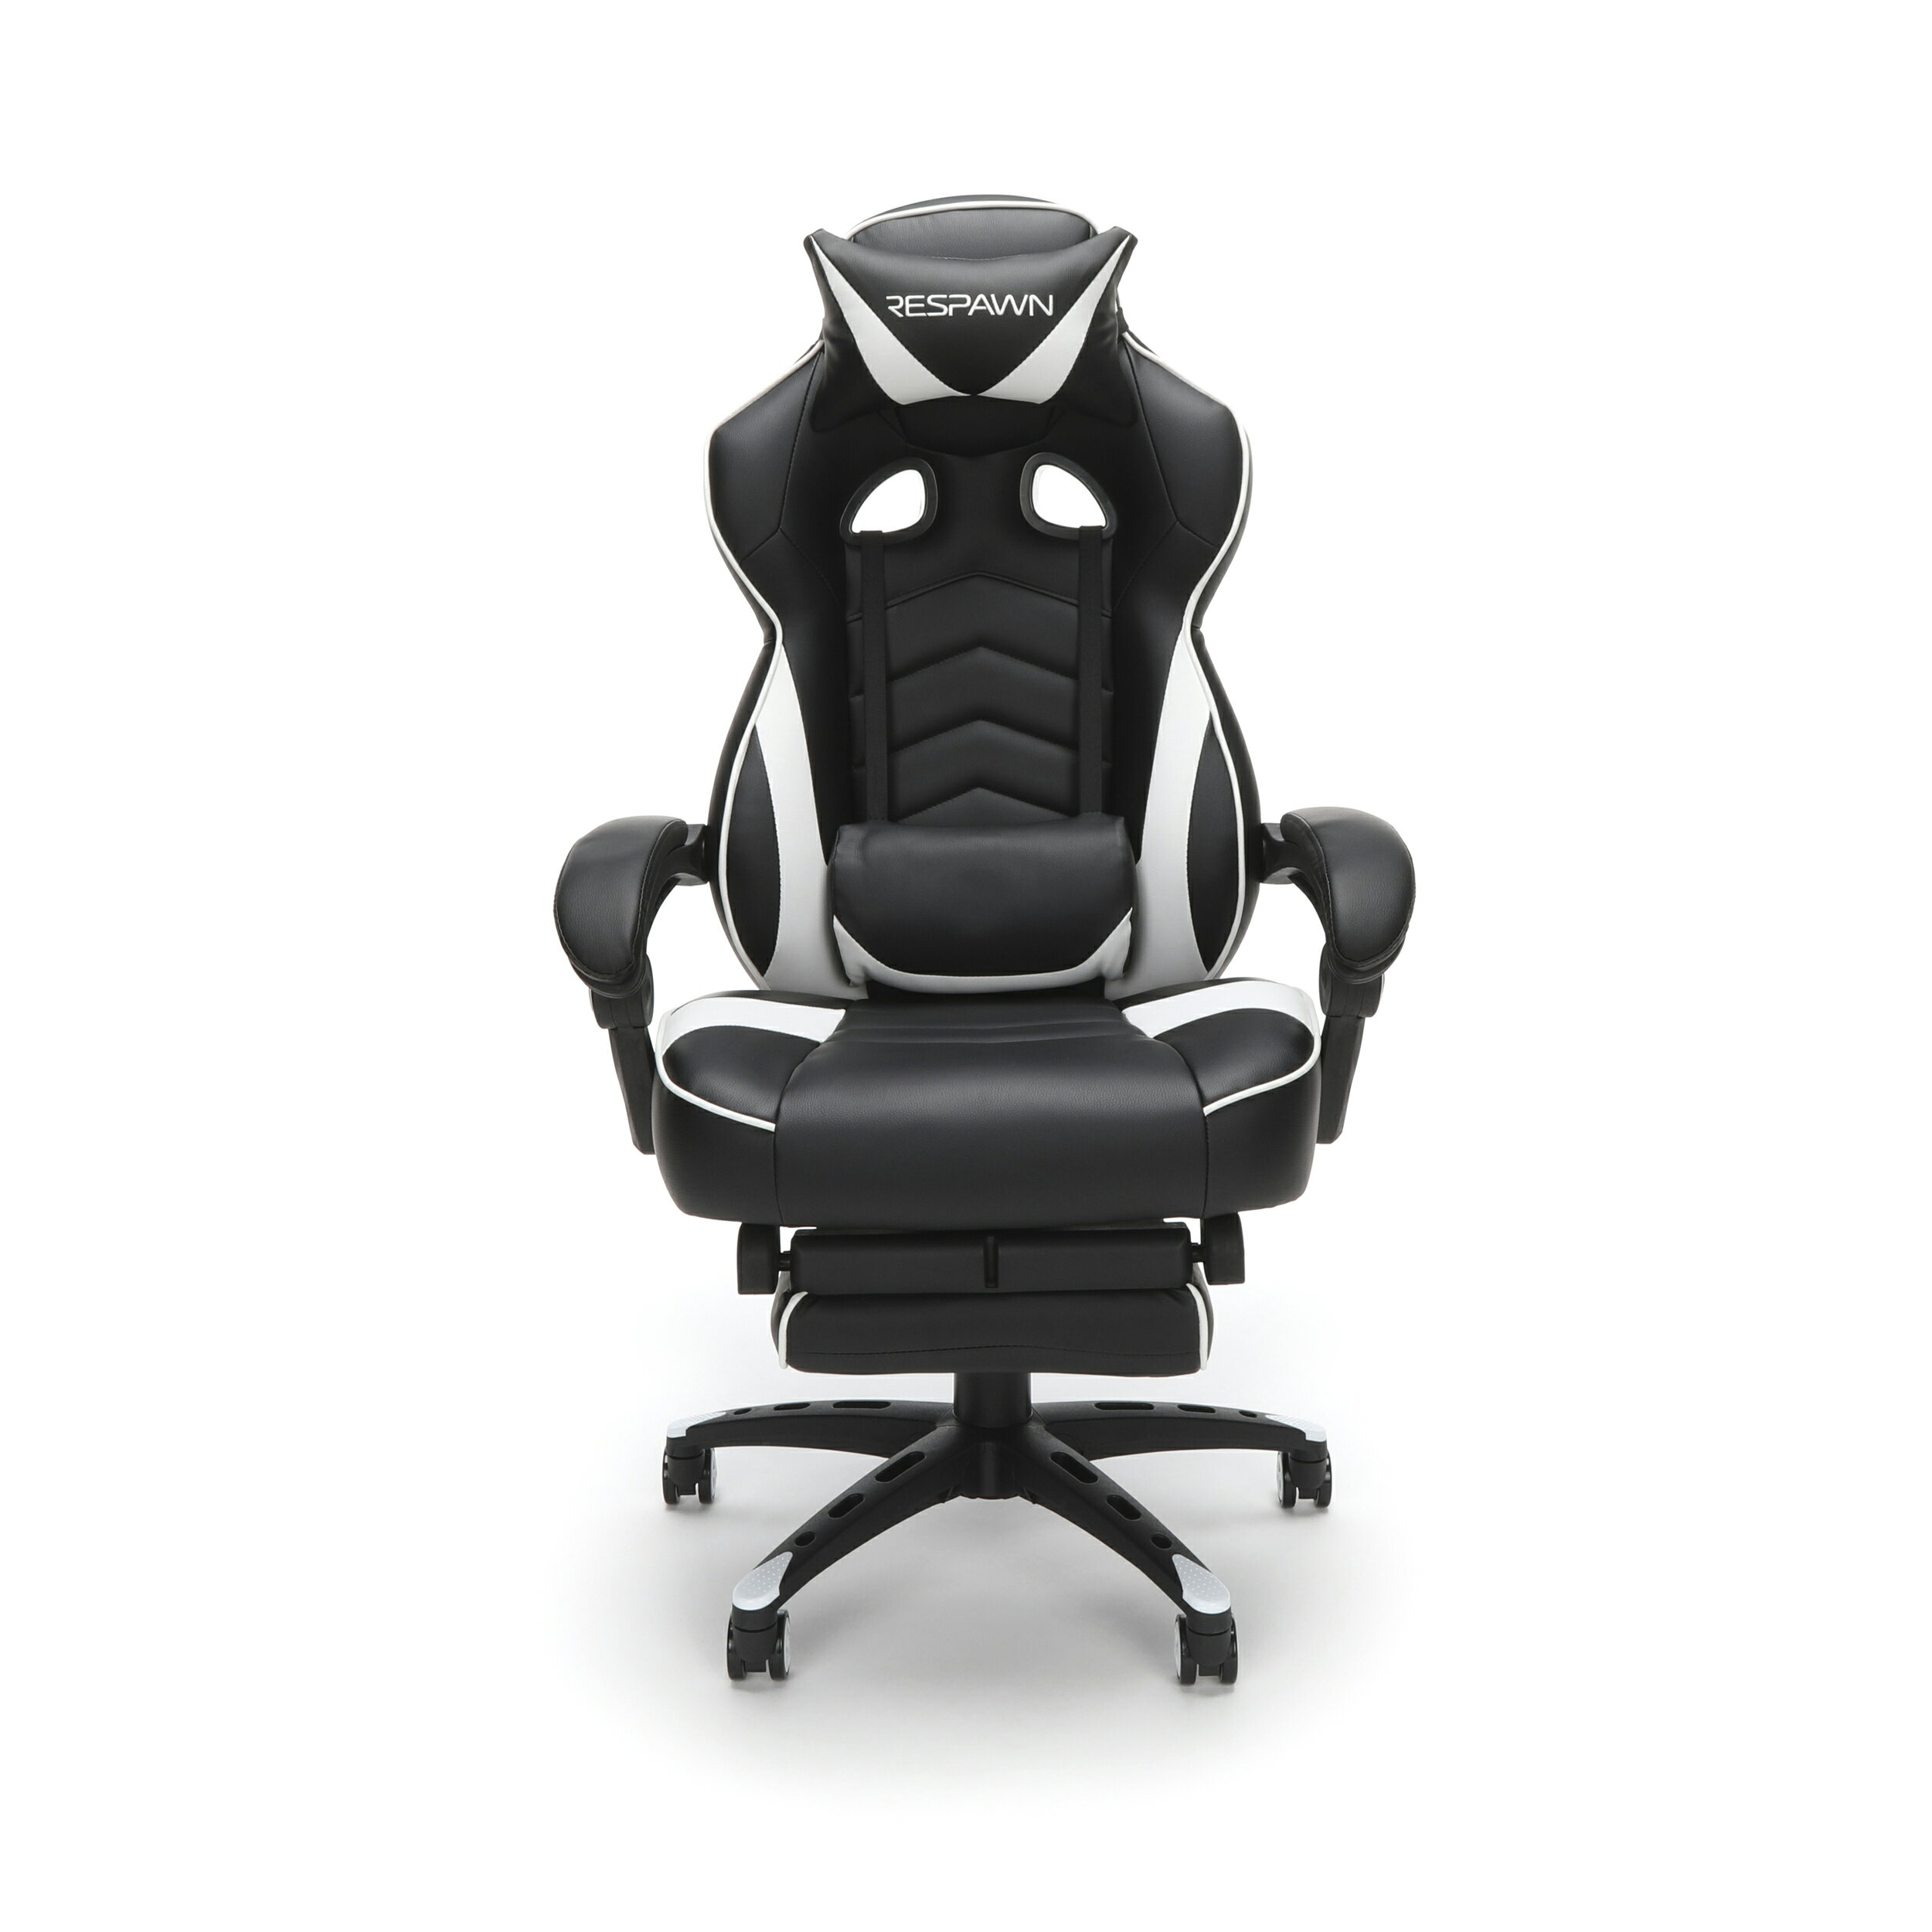 title | Respawn 110 Racing Style Gaming Chair